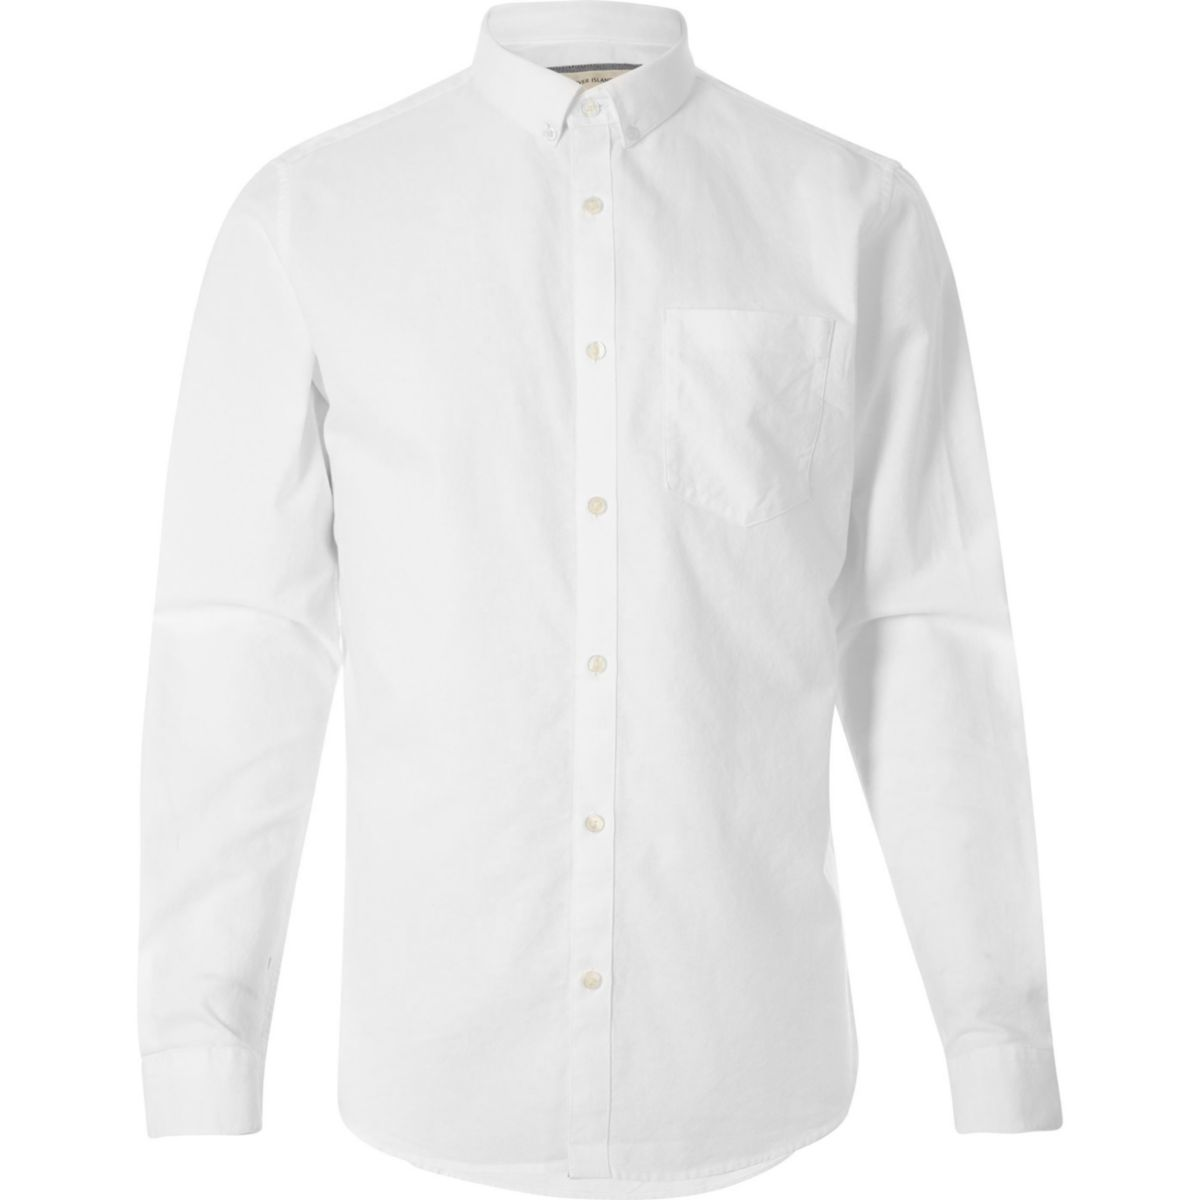 Big and Tall white casual Oxford shirt